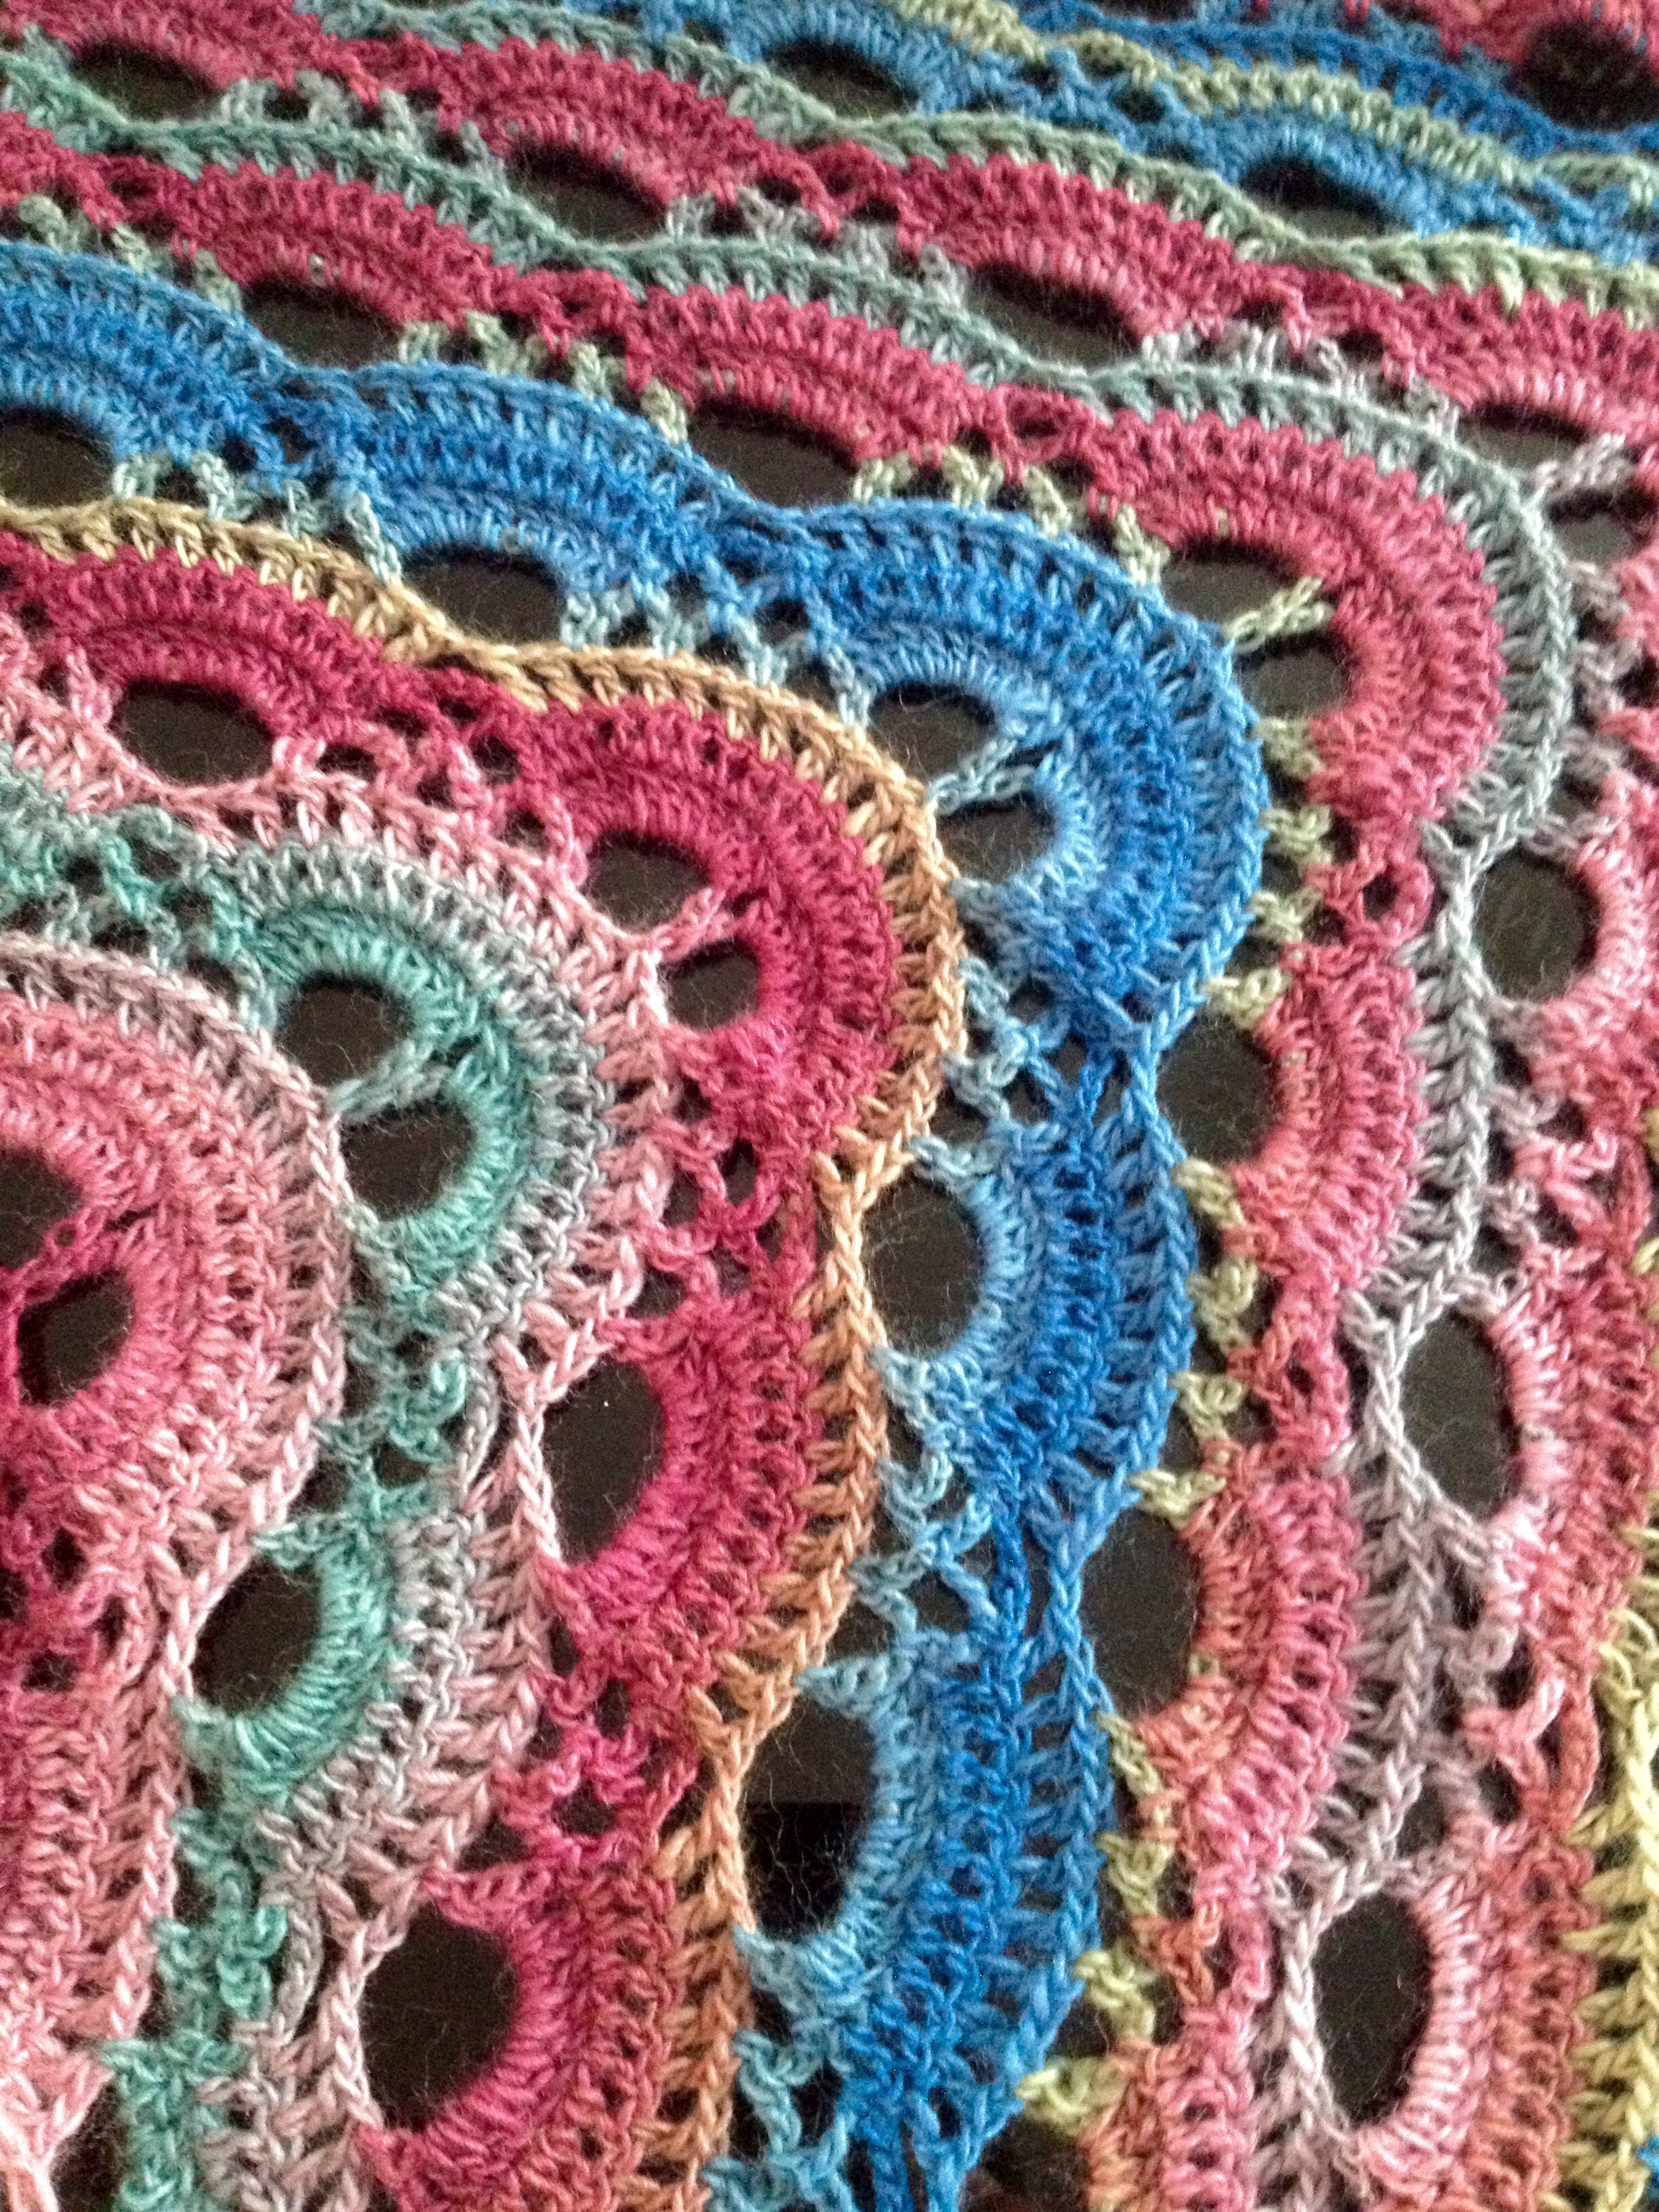 Scalloped Triangle Shawl Crochet Project By Theresa M Lovecrochet